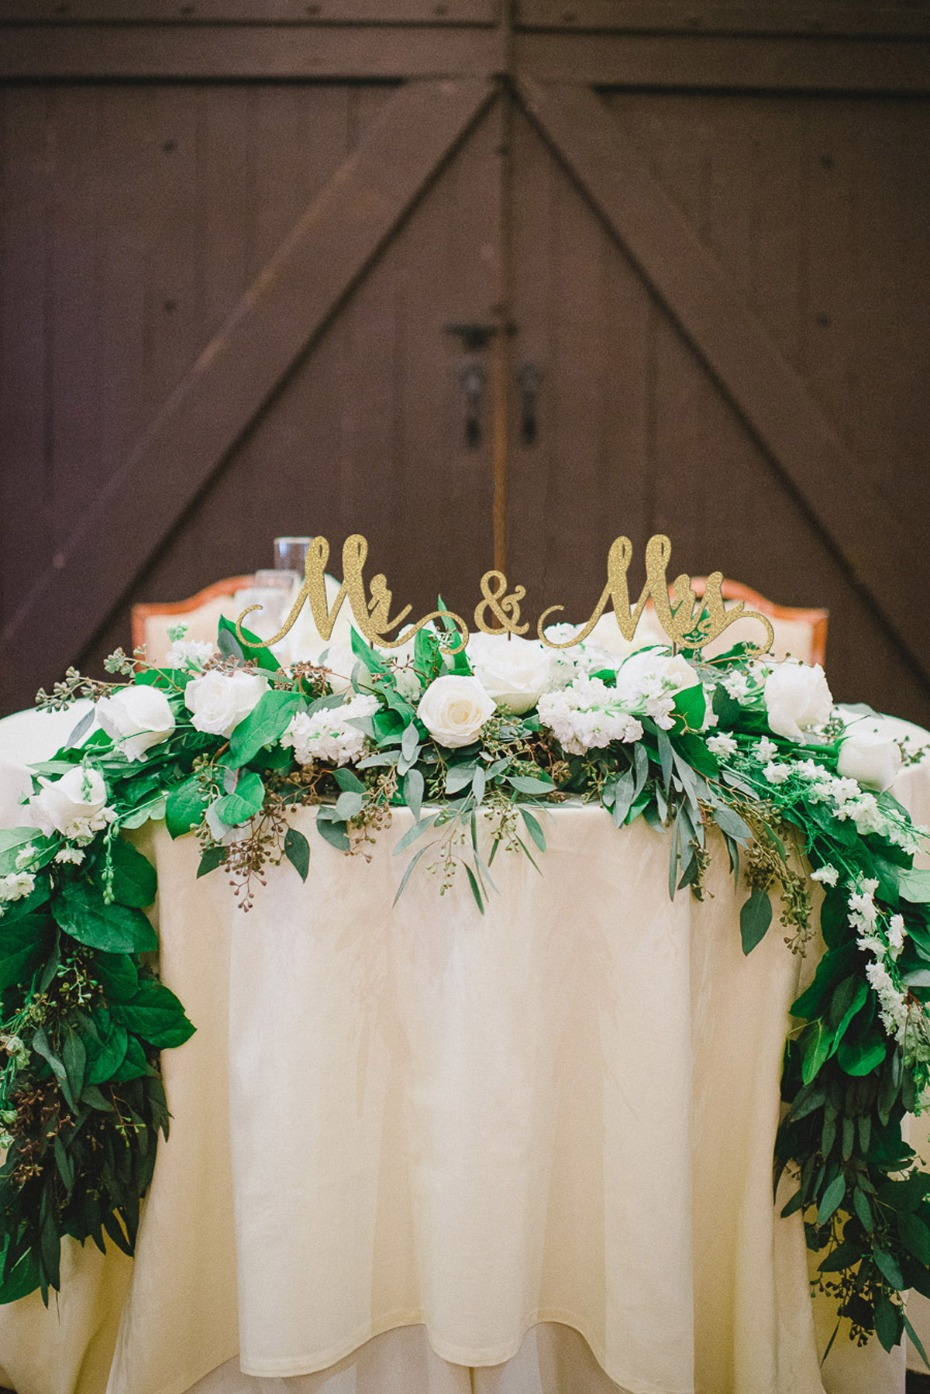 Custom table signs from Thistle and Lace